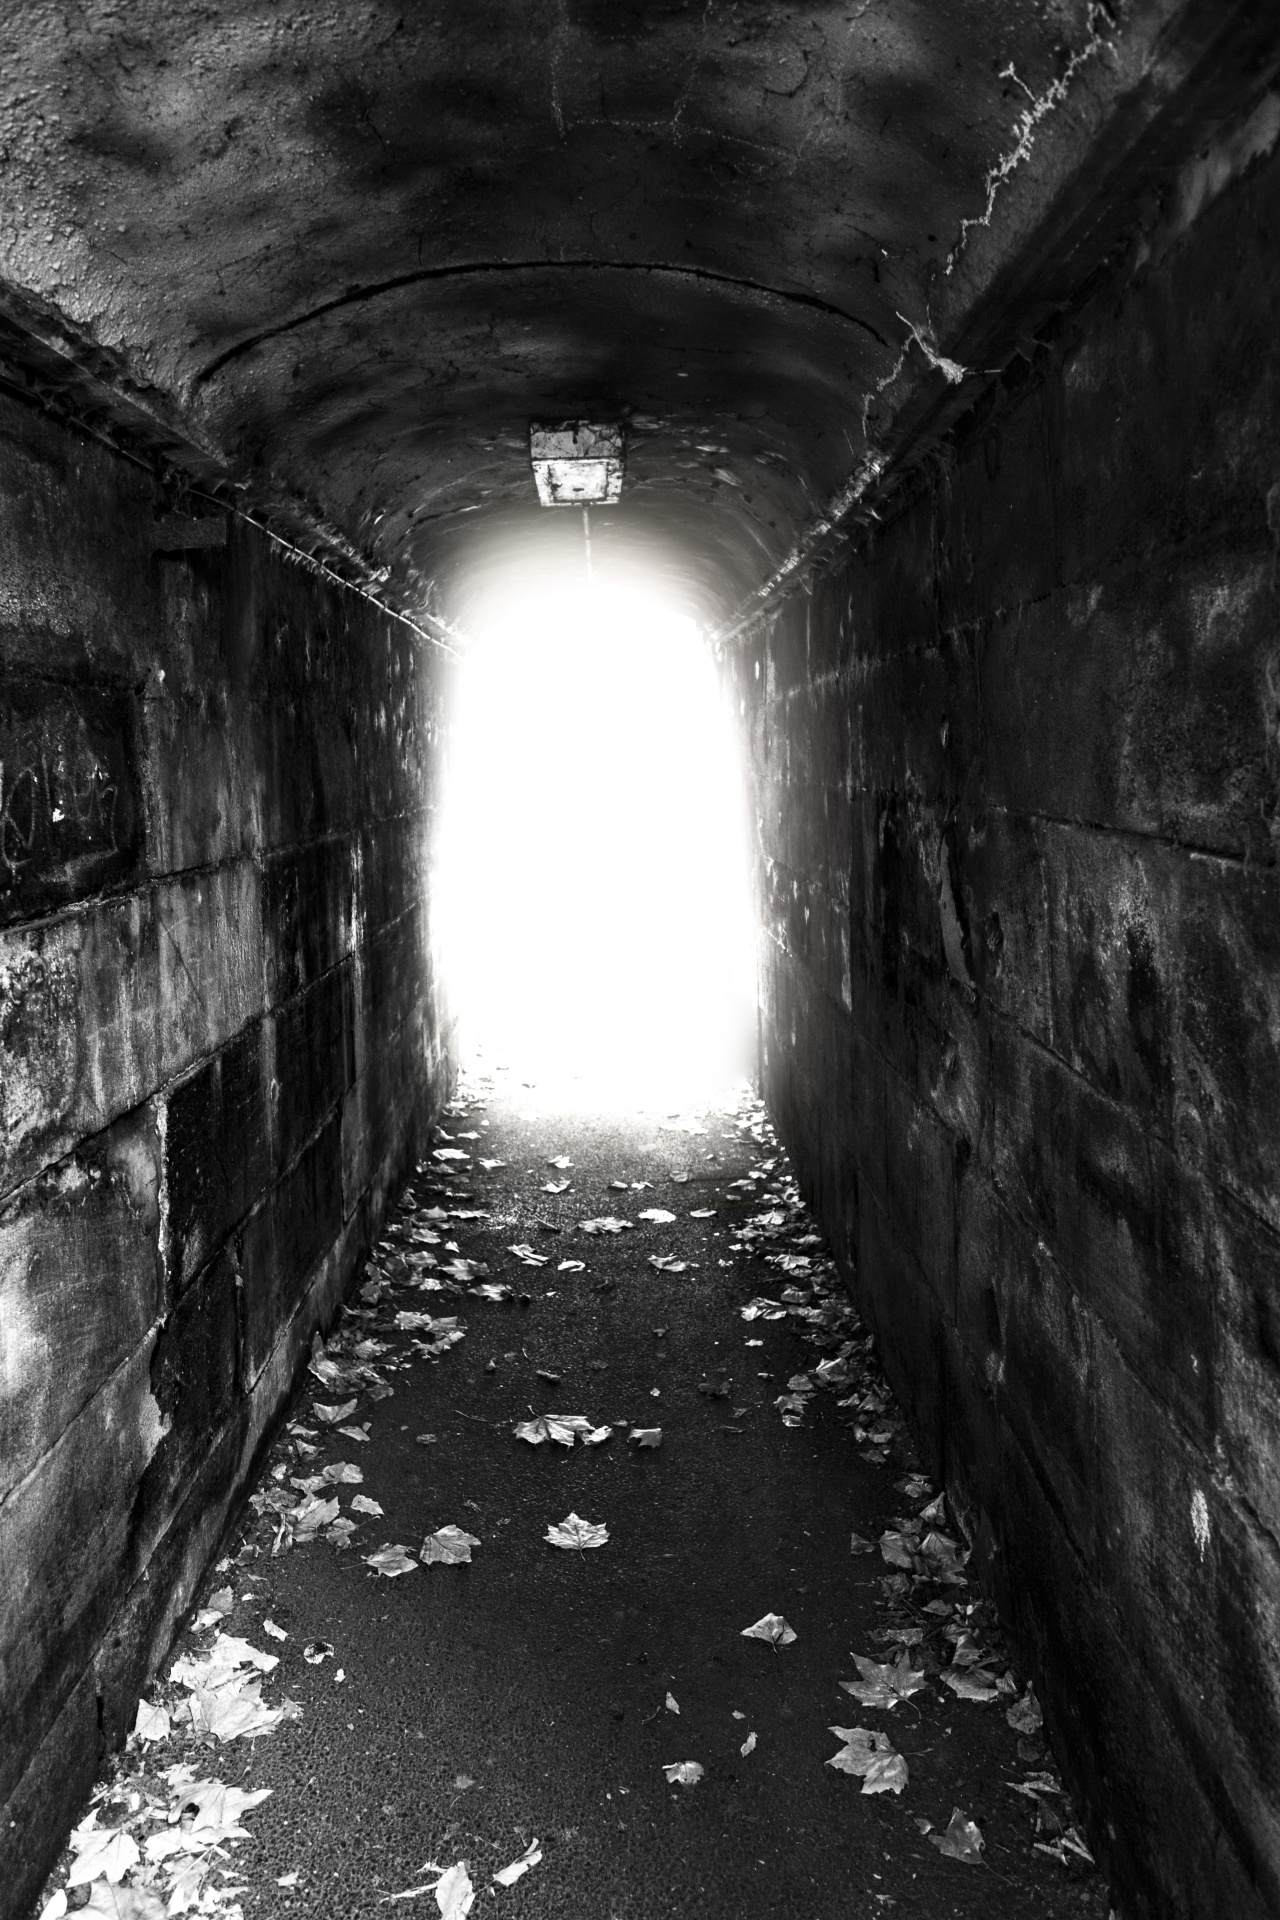 tunnel, discouragement, encouragement, fear, despair, hope